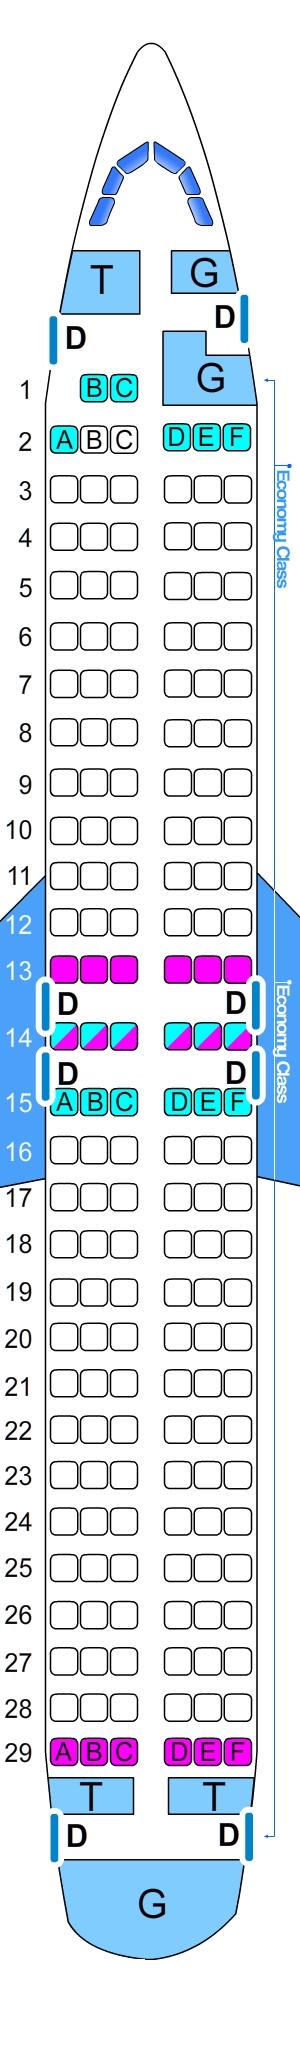 Seat map for Sky Airlines Boeing B737 400 170pax